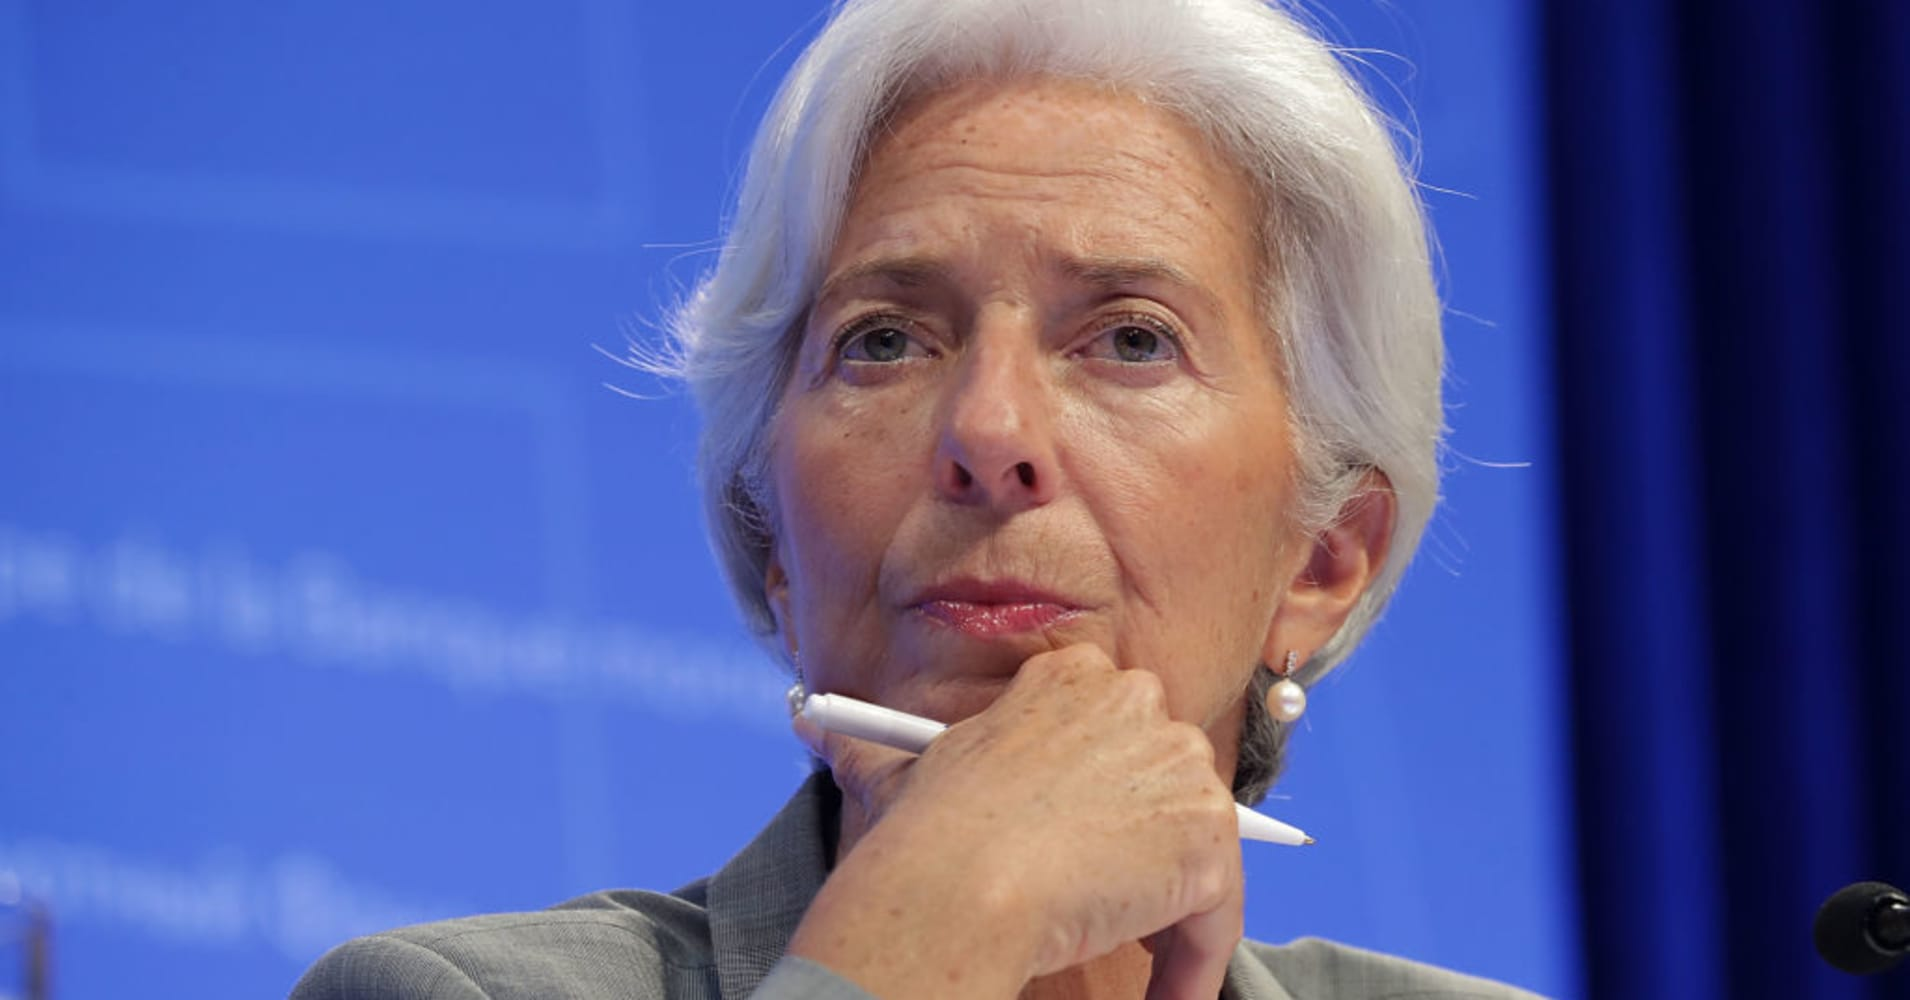 IMF Christine Lagarde on Jamal Khashoggi's disappearance, Saudi Arabia